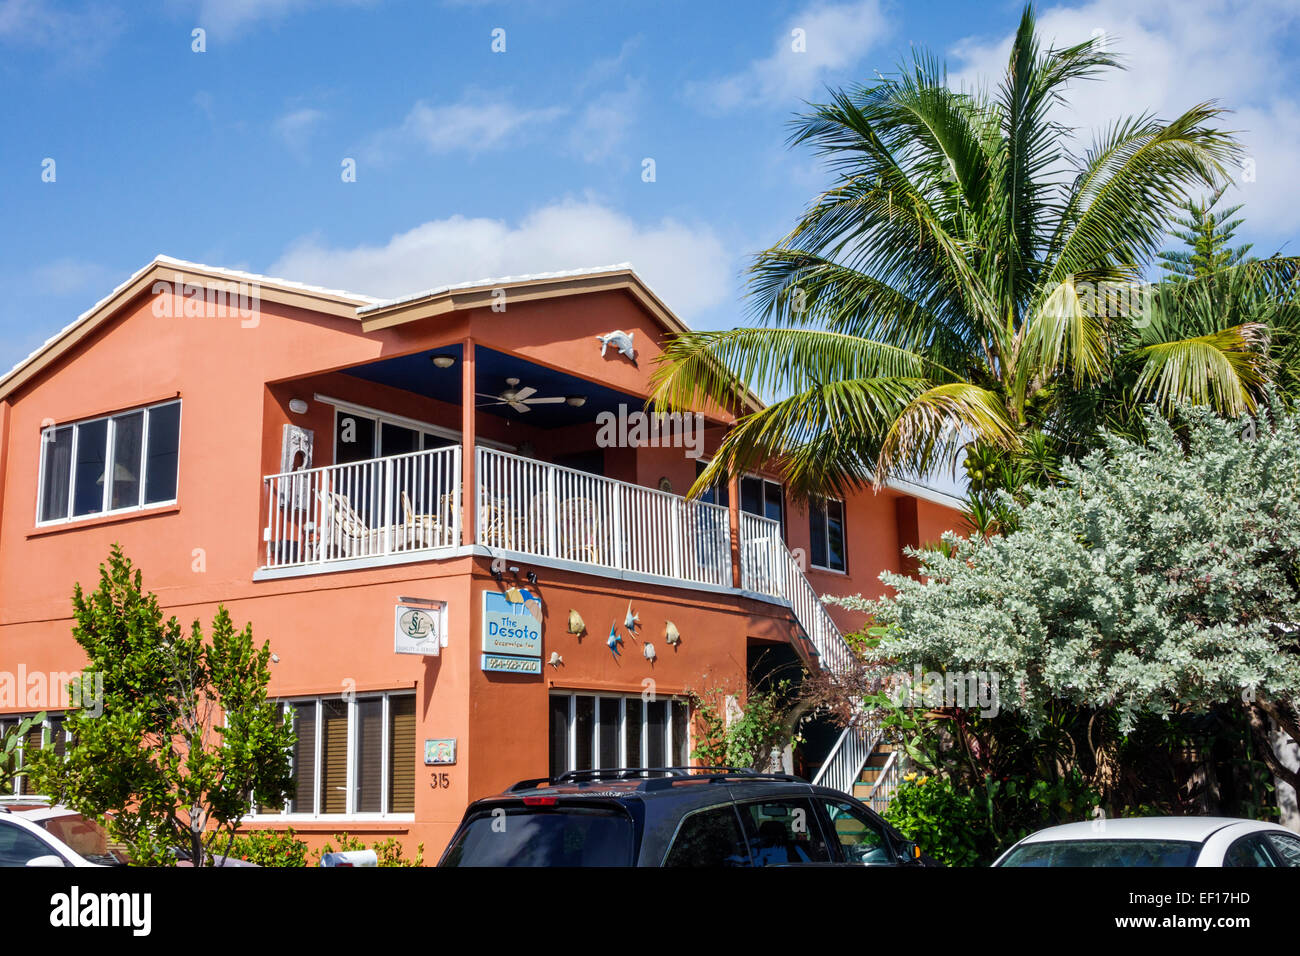 Hollywood Florida The Desoto Oceanview Inn motel hotel front entrance - Stock Image